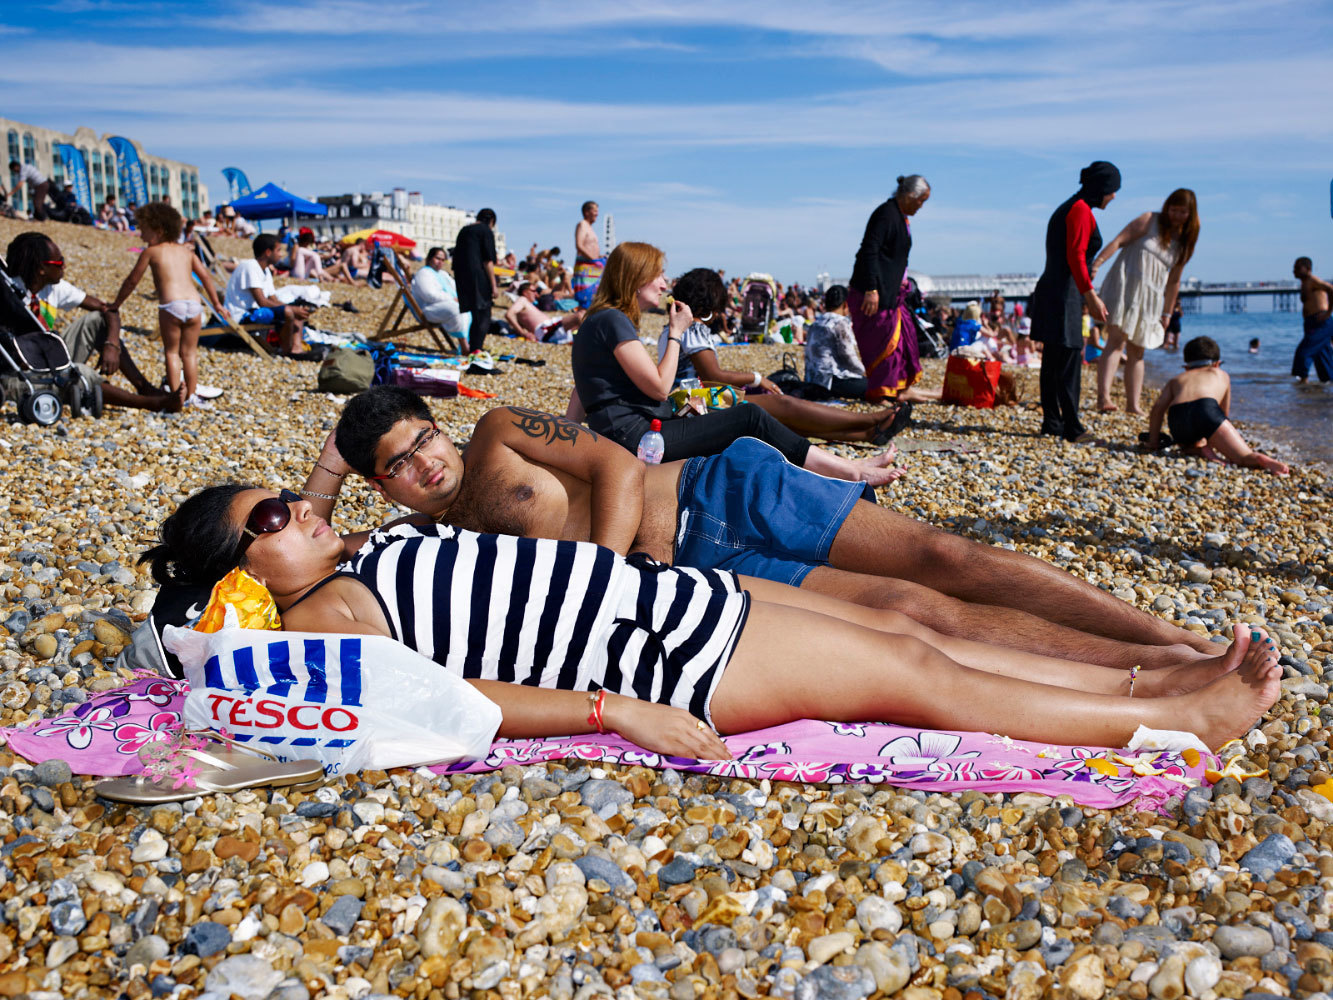 by Jessica van der Weert, part of the 'Seaside' project